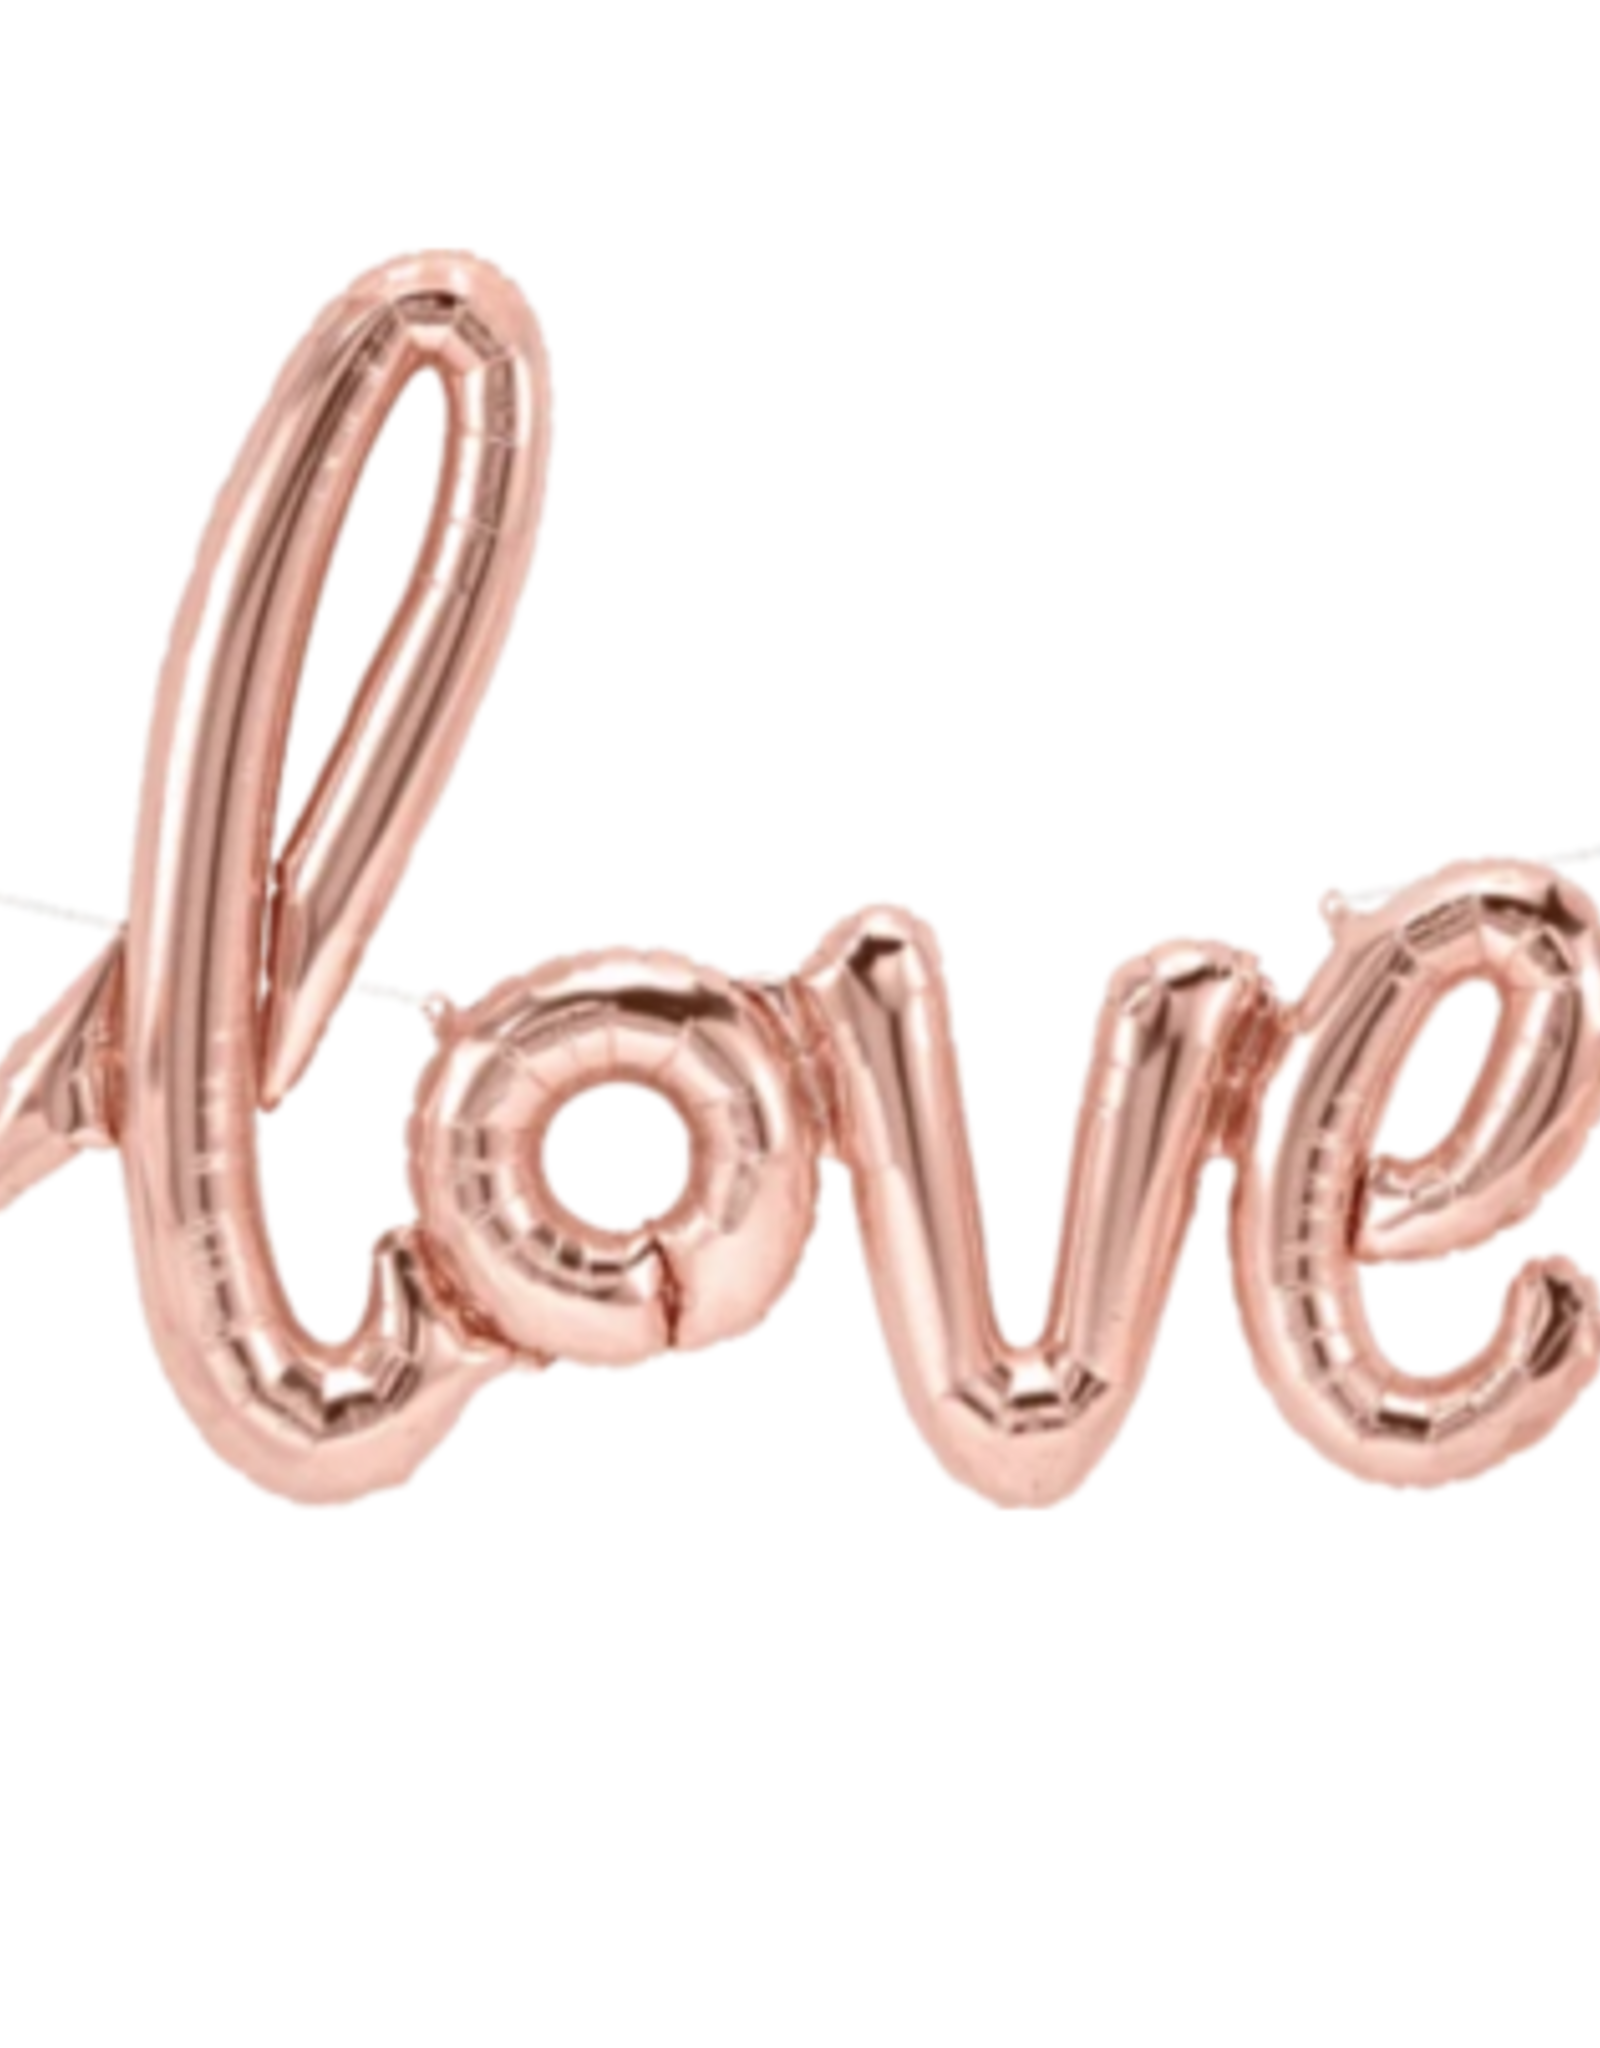 Rainbow Balloons Balloon - LOVE Pink Script Air Filled 40""